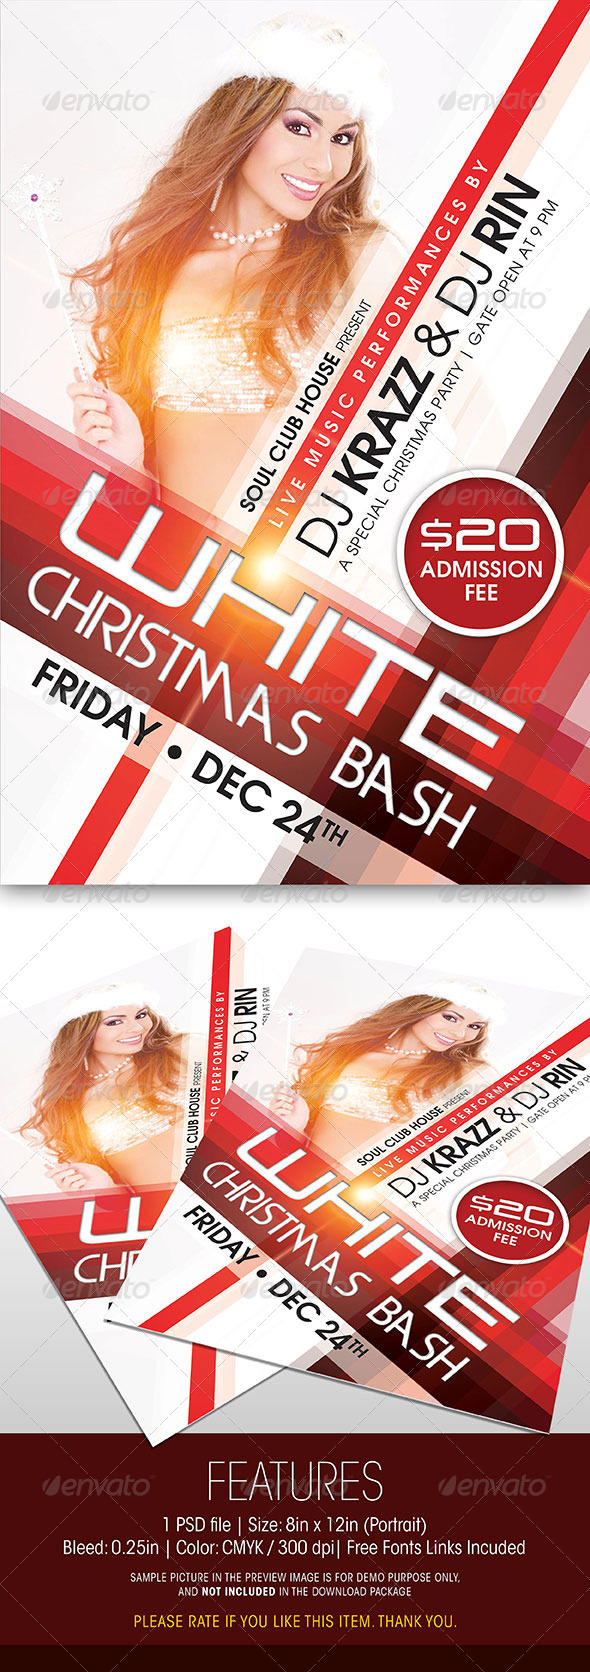 GraphicRiver Christmas Party Flyer 6050065